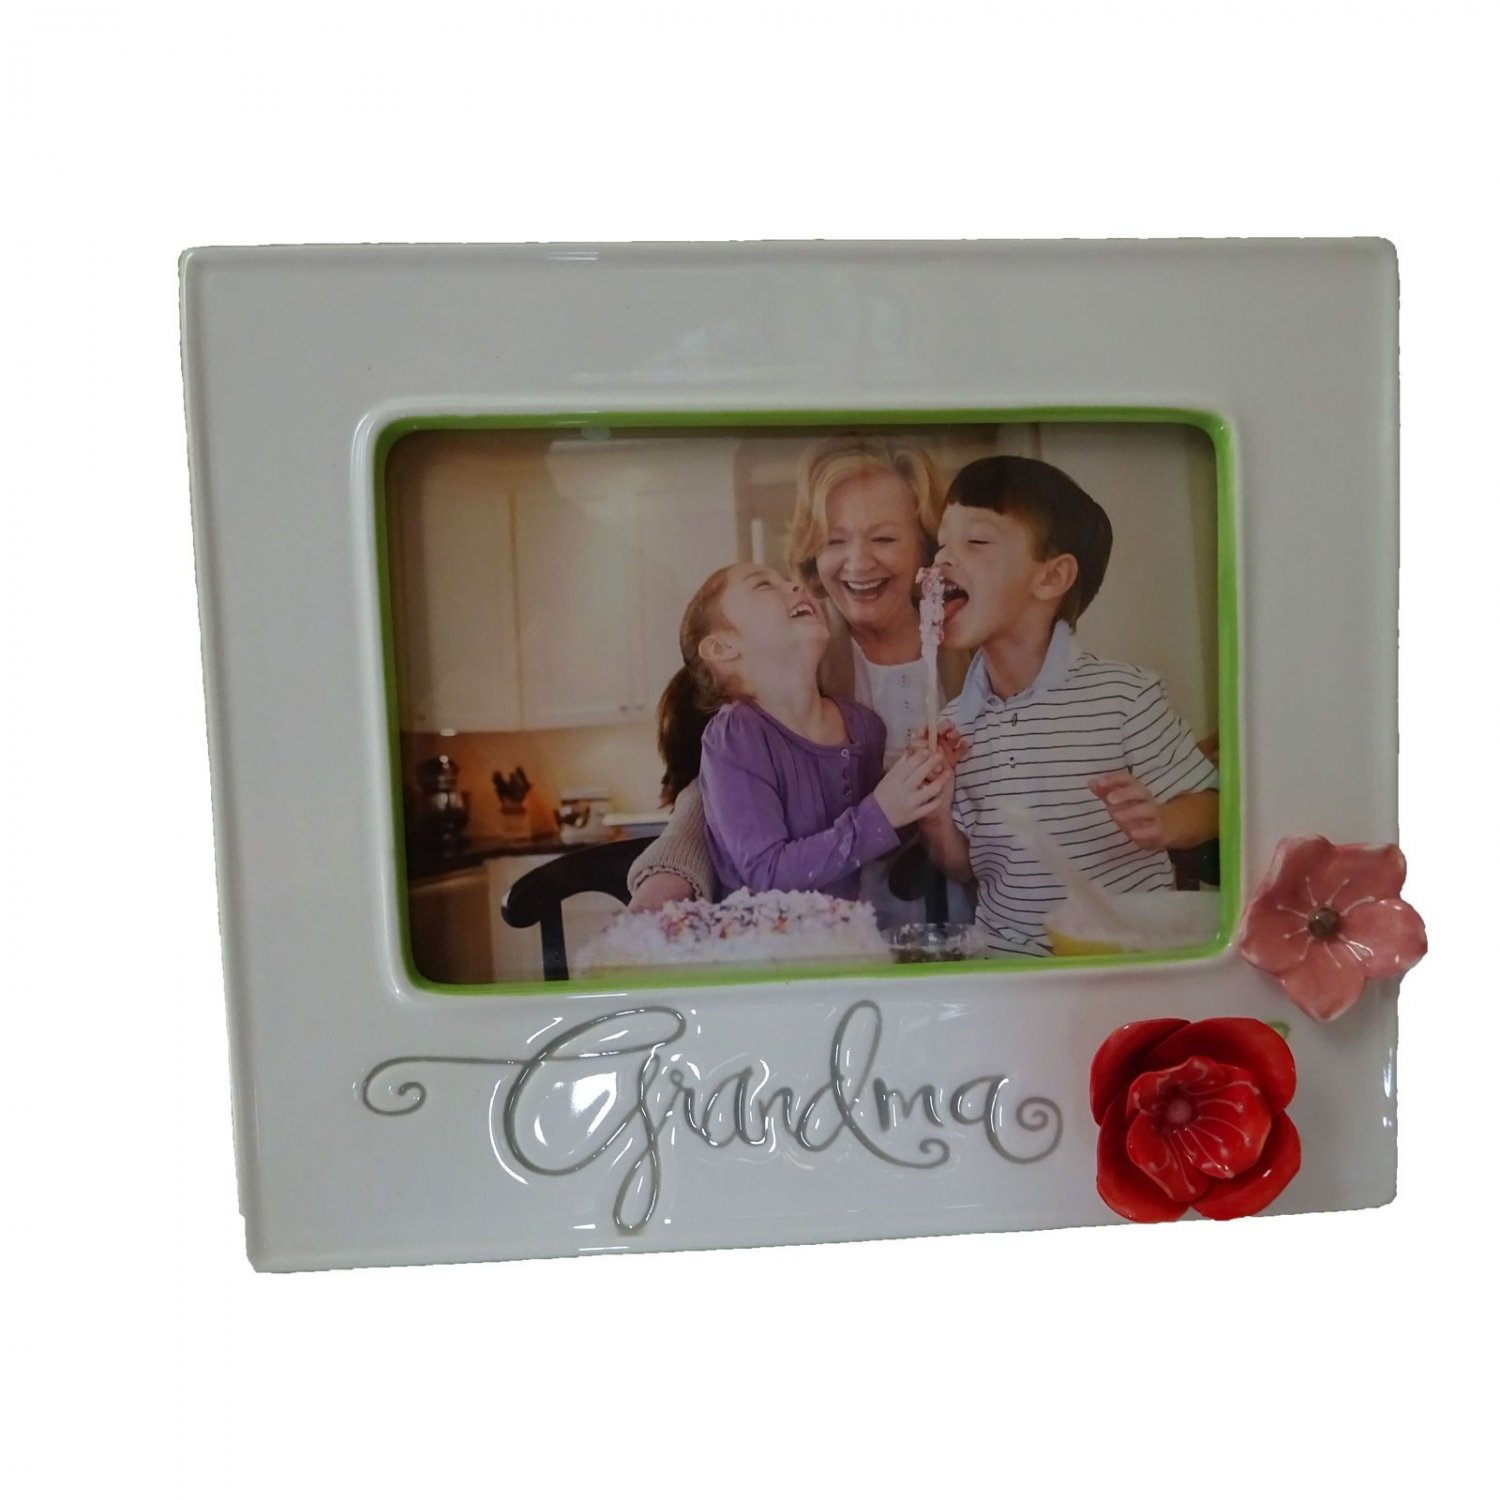 Hallmark Grandma Mother Handcrafted Sculpted Floral Photo Frame Picture Flower